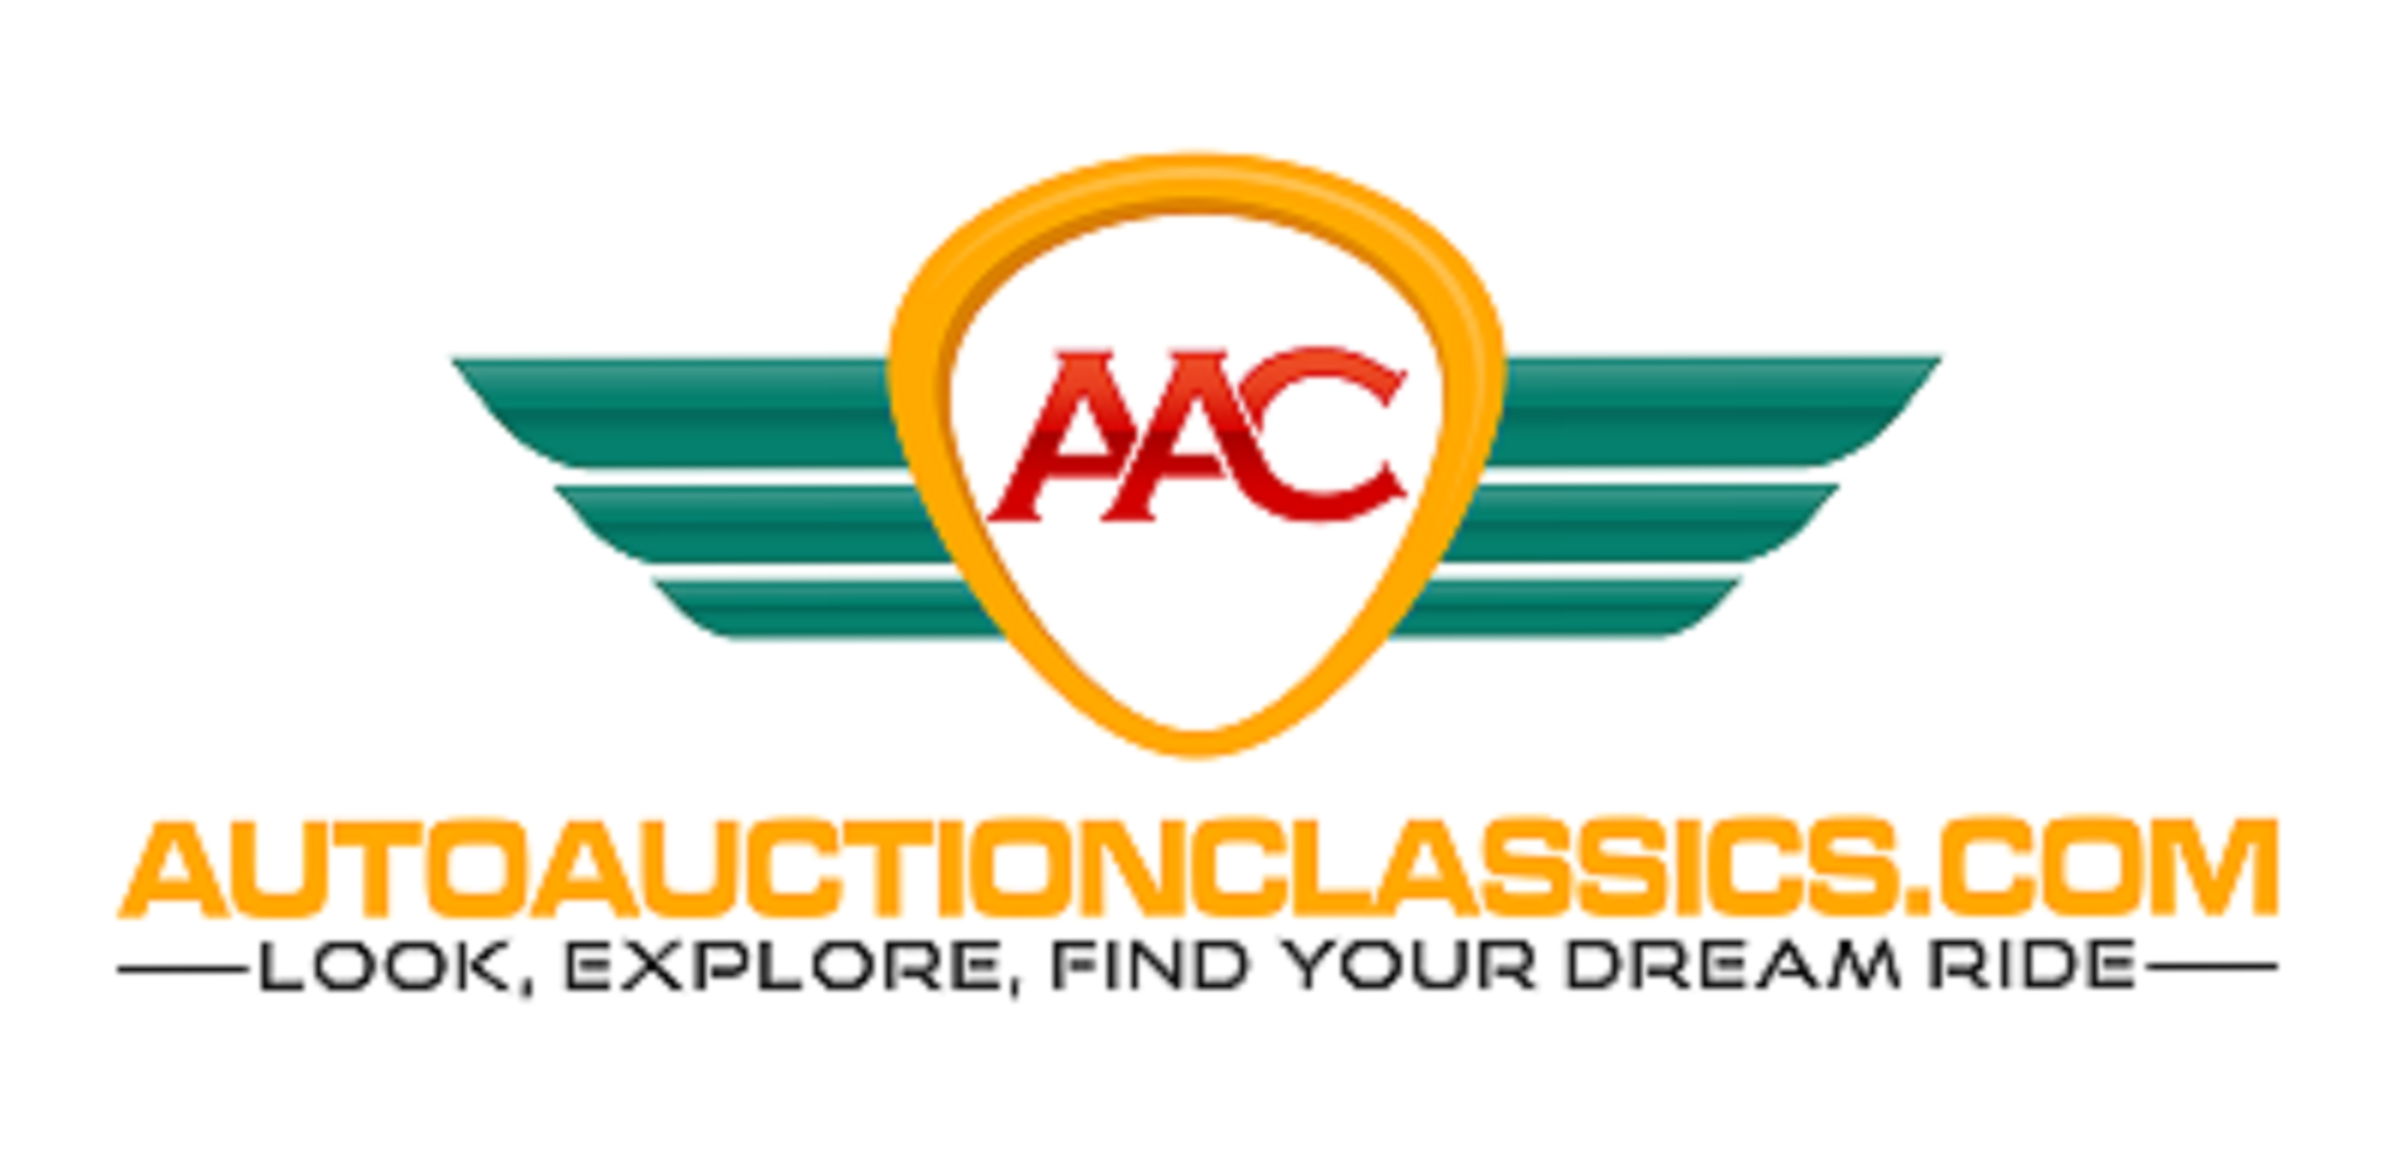 Website Exclusive for buyers and seller of classic cars/trucks/antique motorcycles